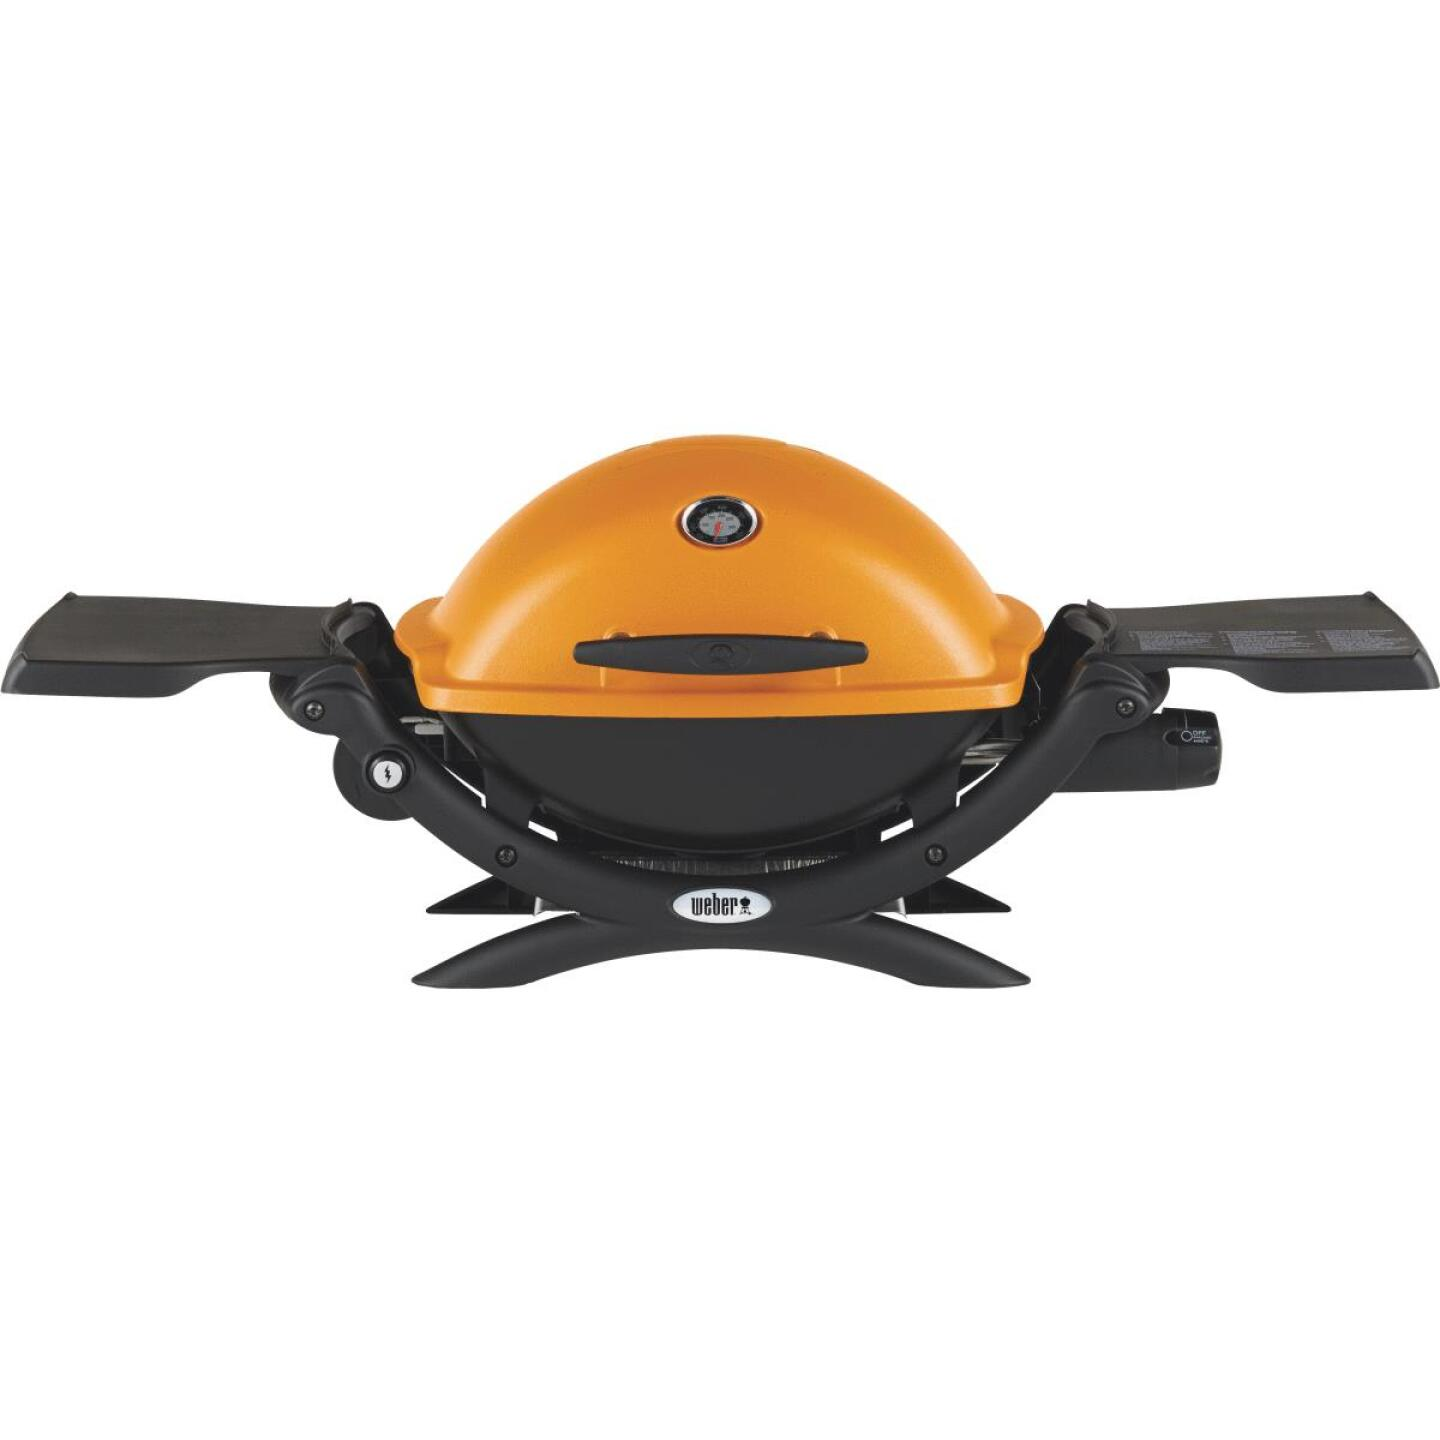 Weber Q 1200 1-Burner Orange 8,500-BTU LP Gas Grill Image 5